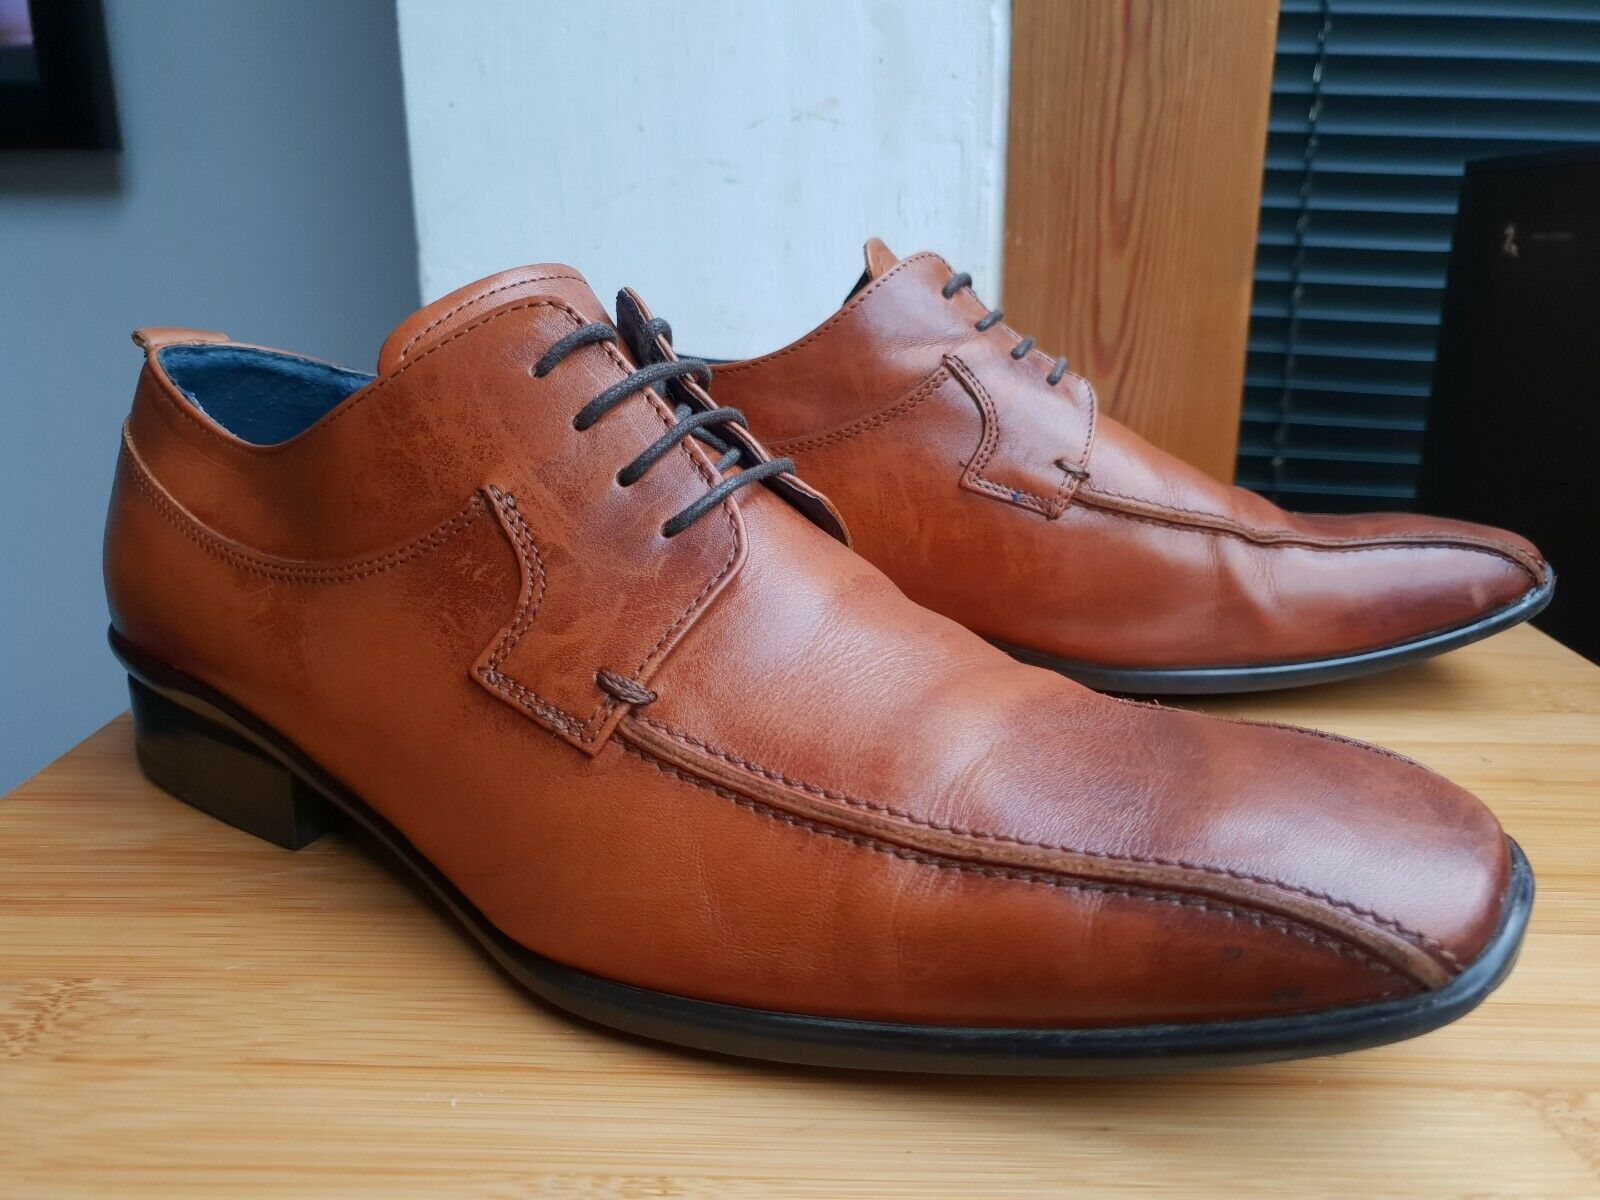 CLARKS BROWN LEATHER LACE-UP SHOES == UK 7 == EUR 41